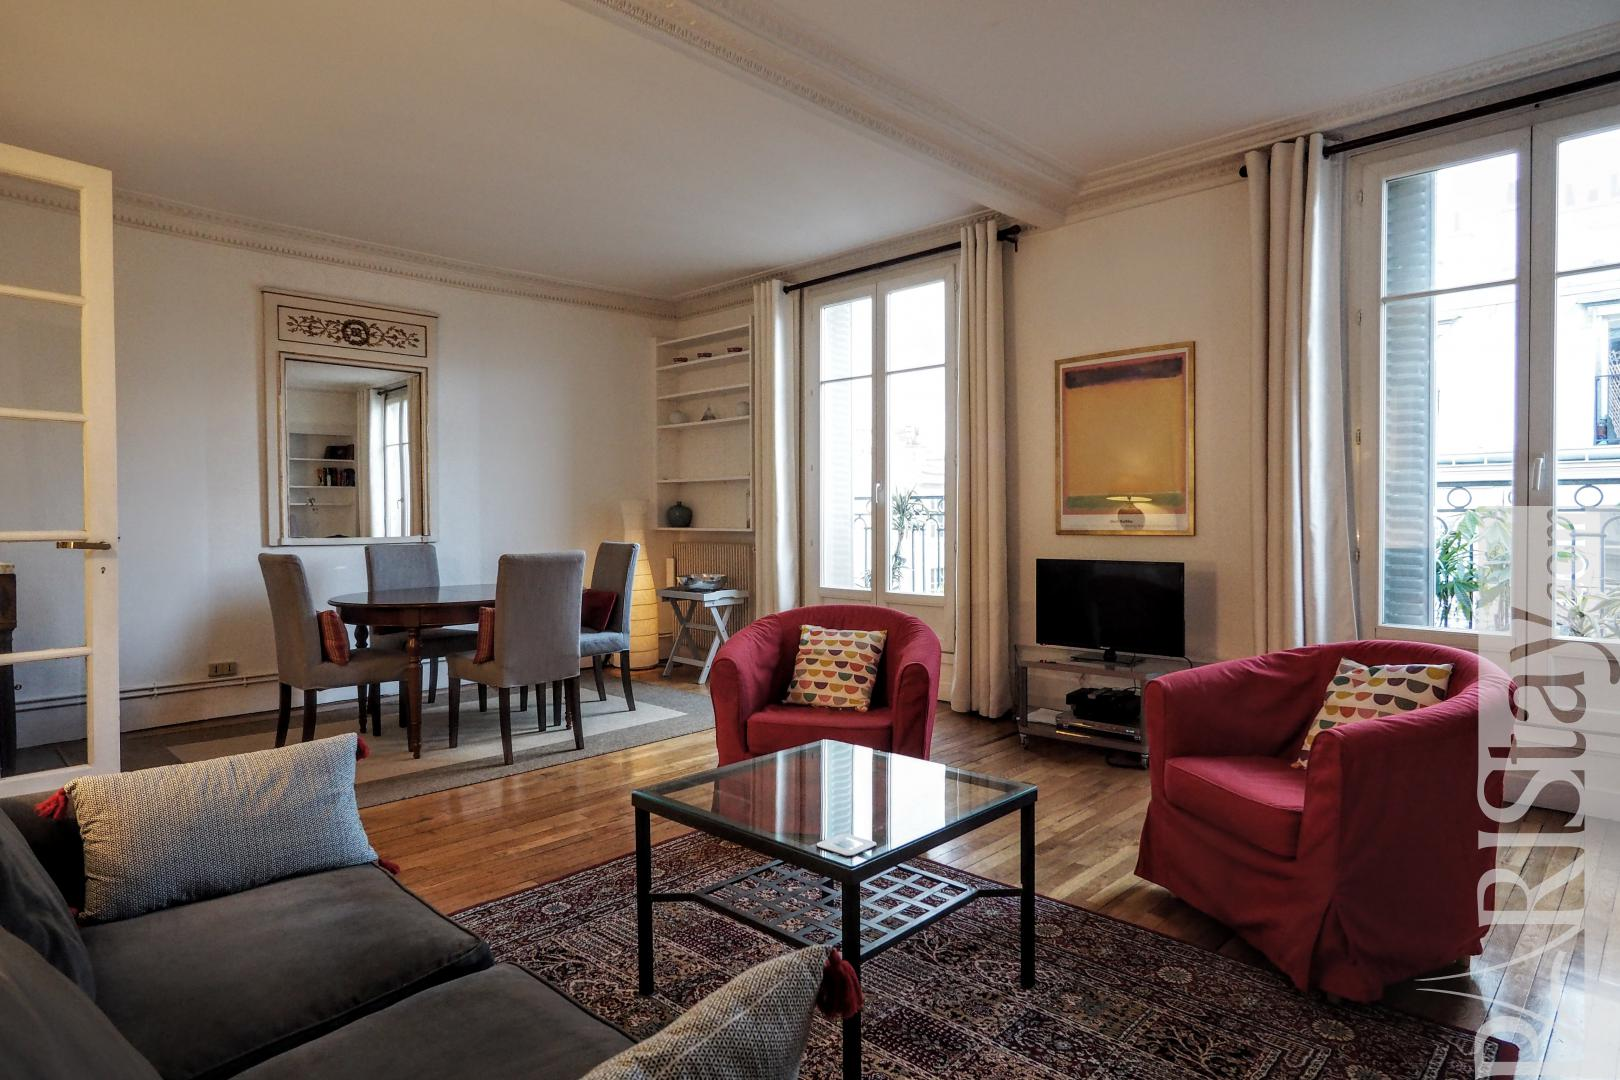 Paris flat for rent 2 bedrooms furnished apartment Place ...